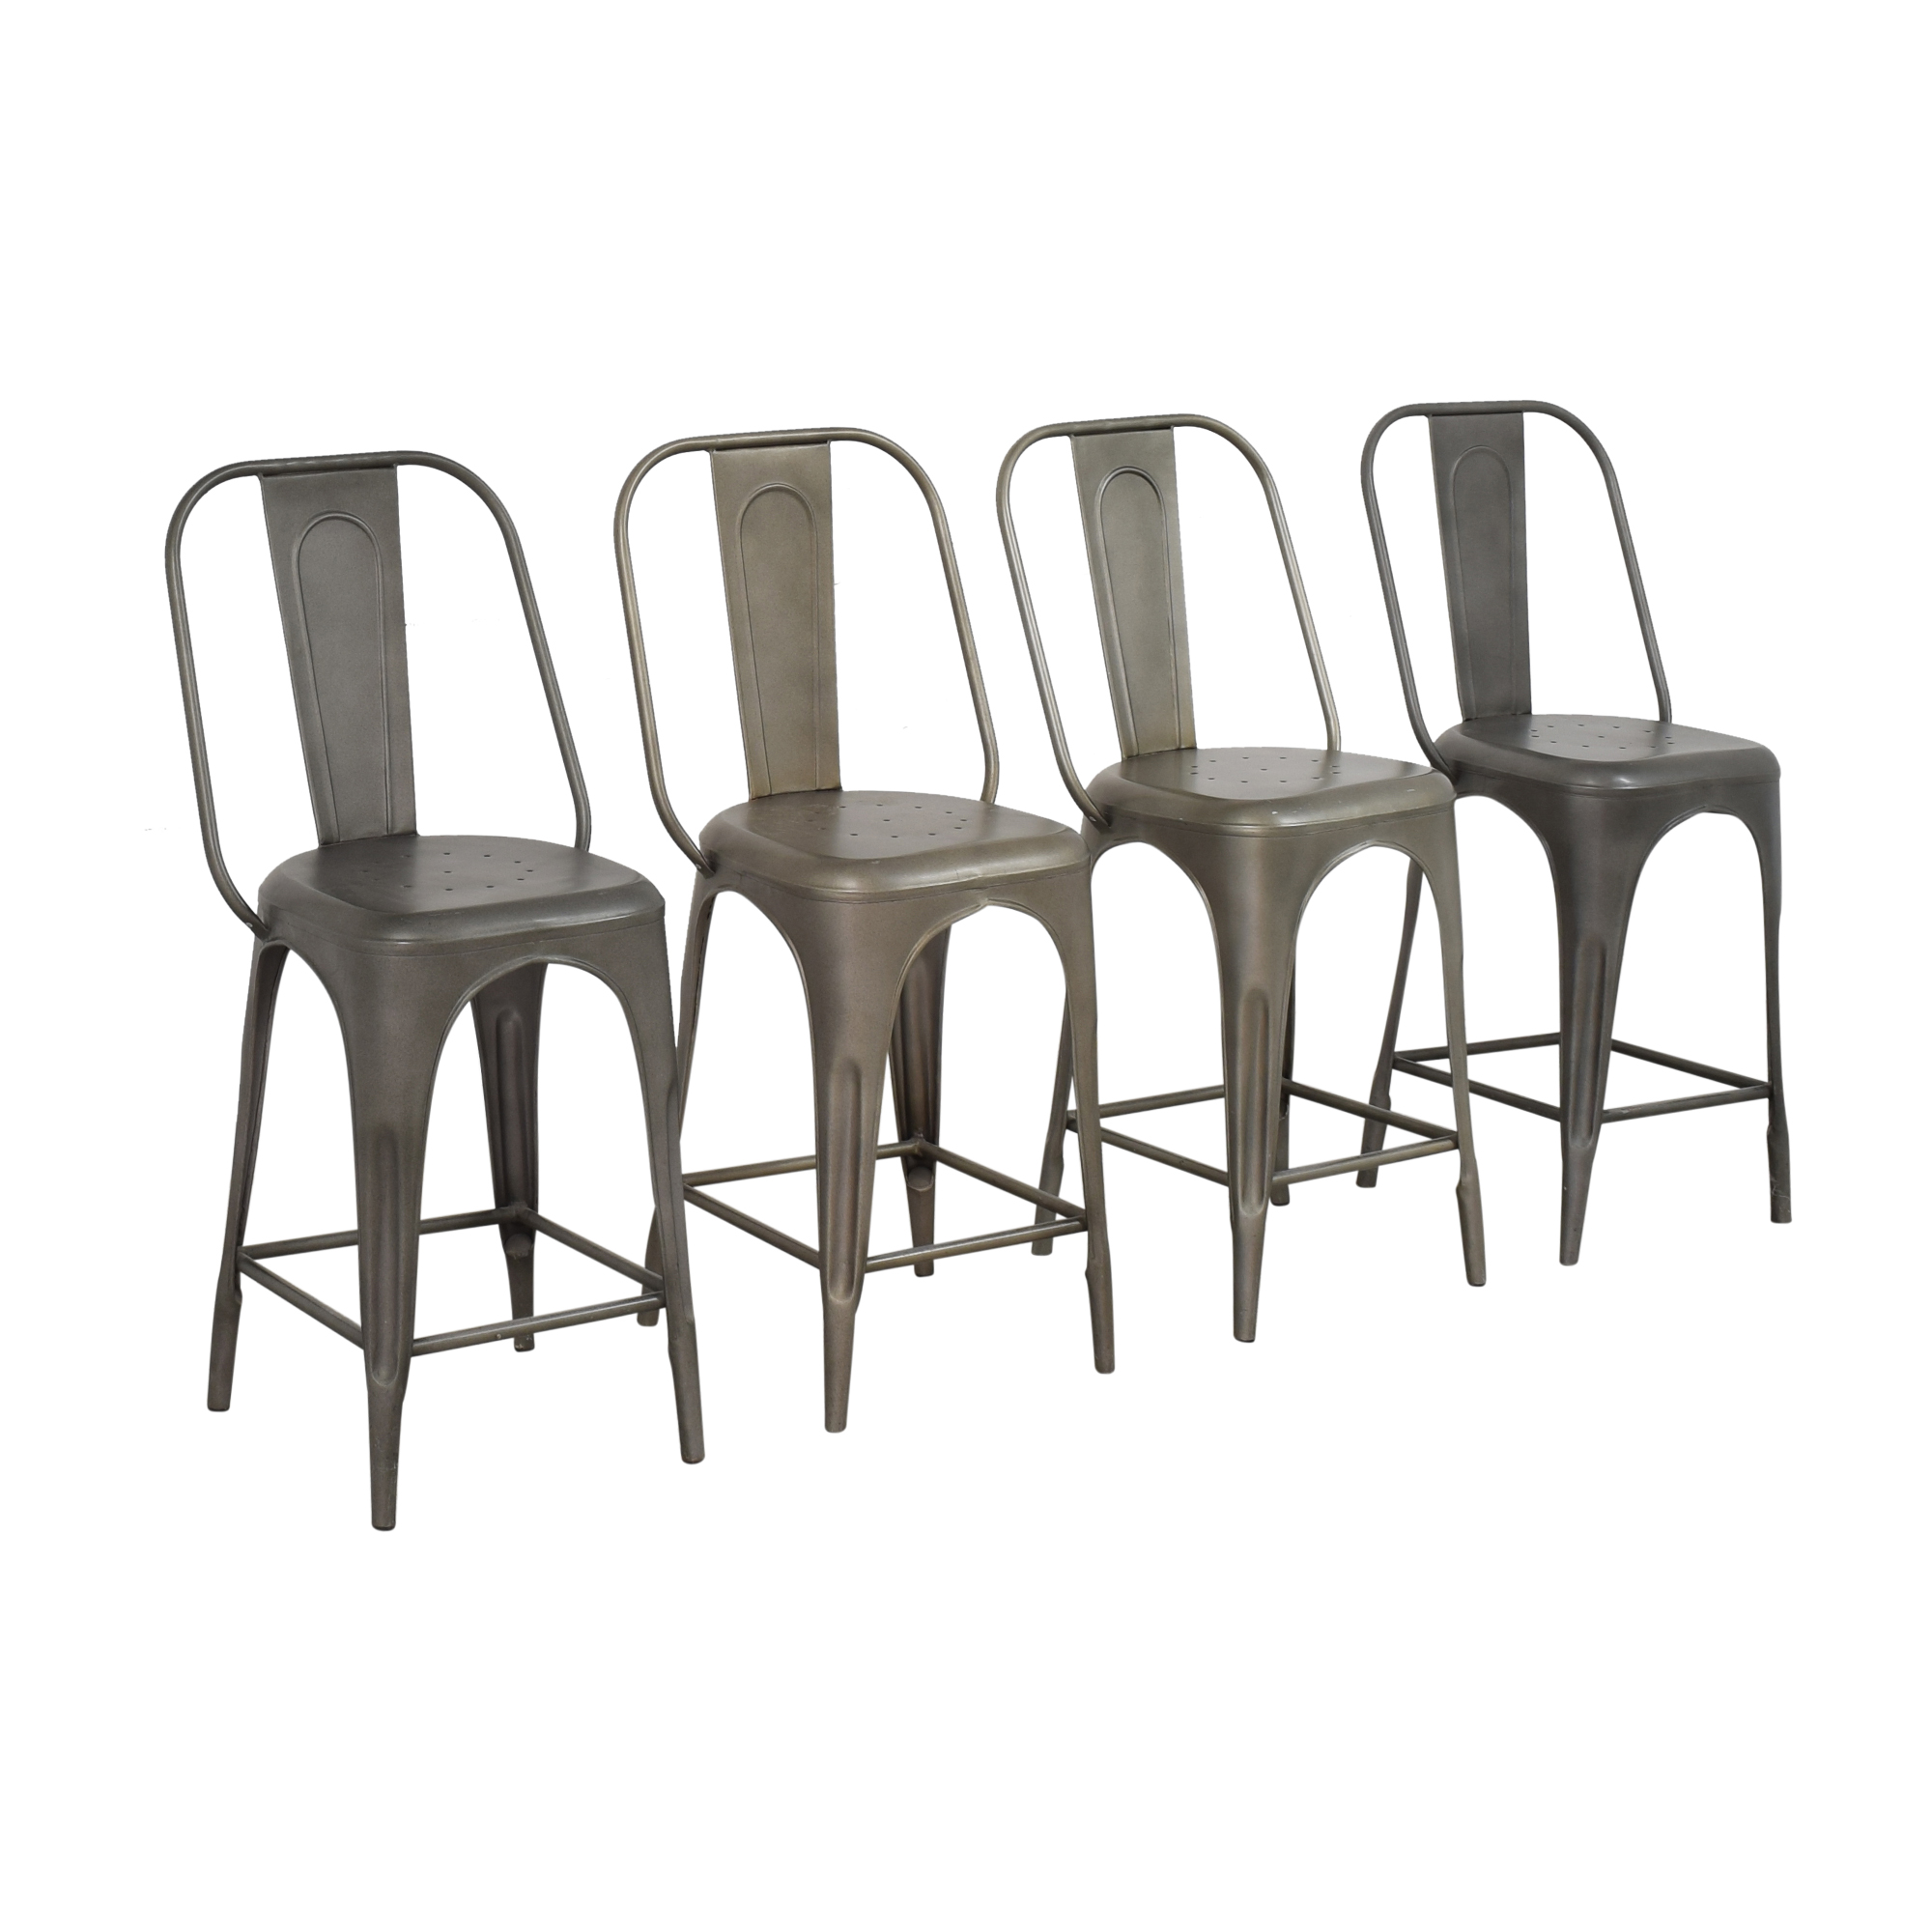 buy Restoration Hardware Restoration Hardware Remy Counter Stools online